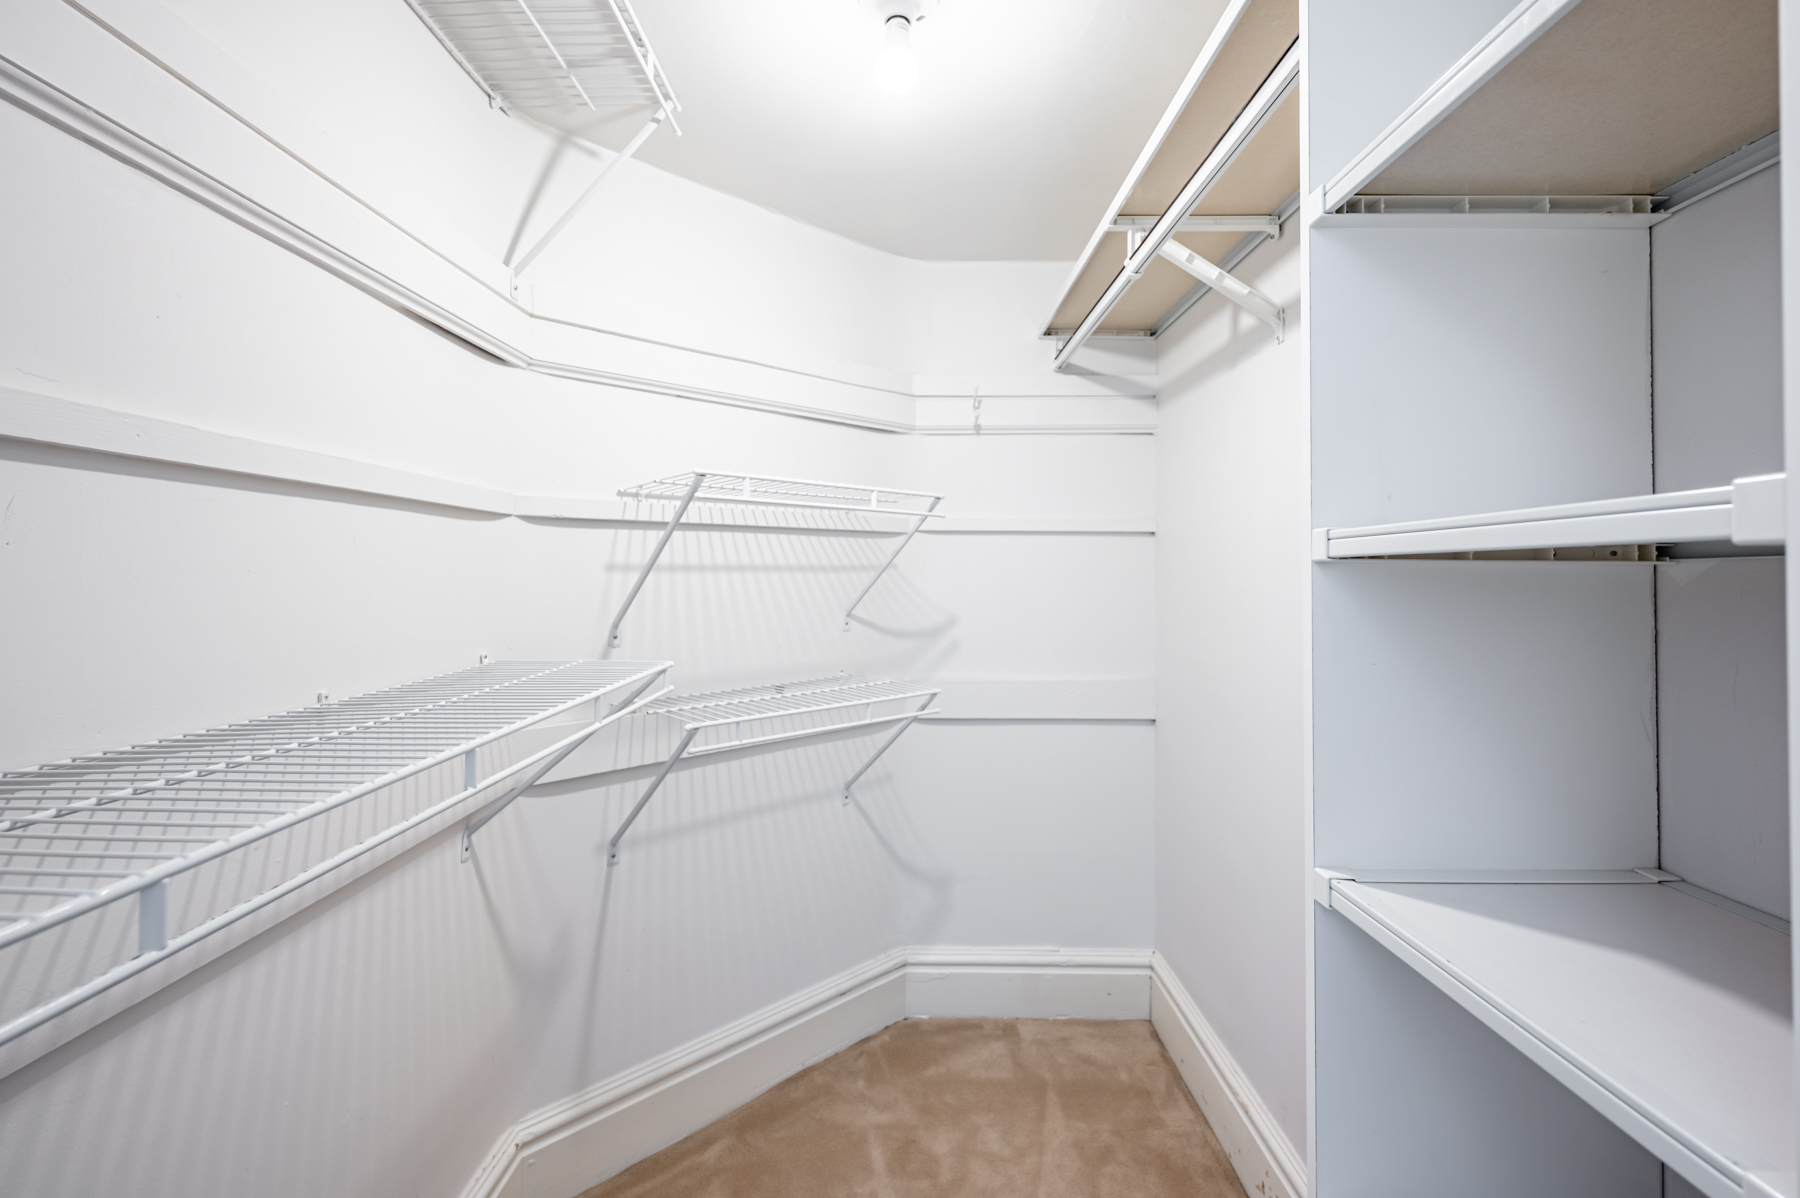 Walk-in closet with wire shelves and compartments.